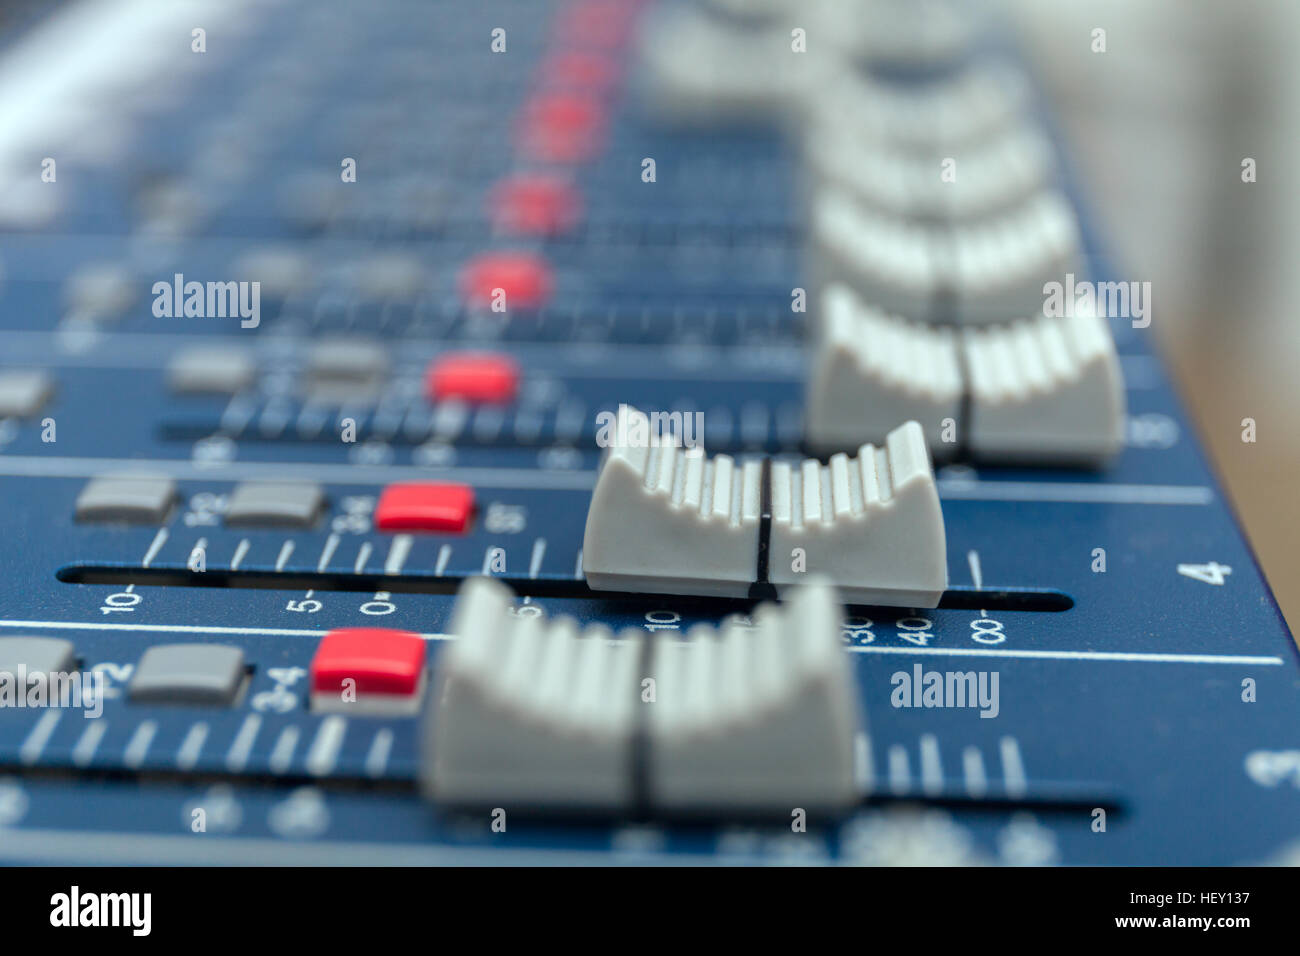 Audio Mixer Table Stock Photos Images Alamy Circuit Compact Volume Pan Amplifier Equipment Sound Acoustic Musical Mixing Engineering Concept Background Selective Focus